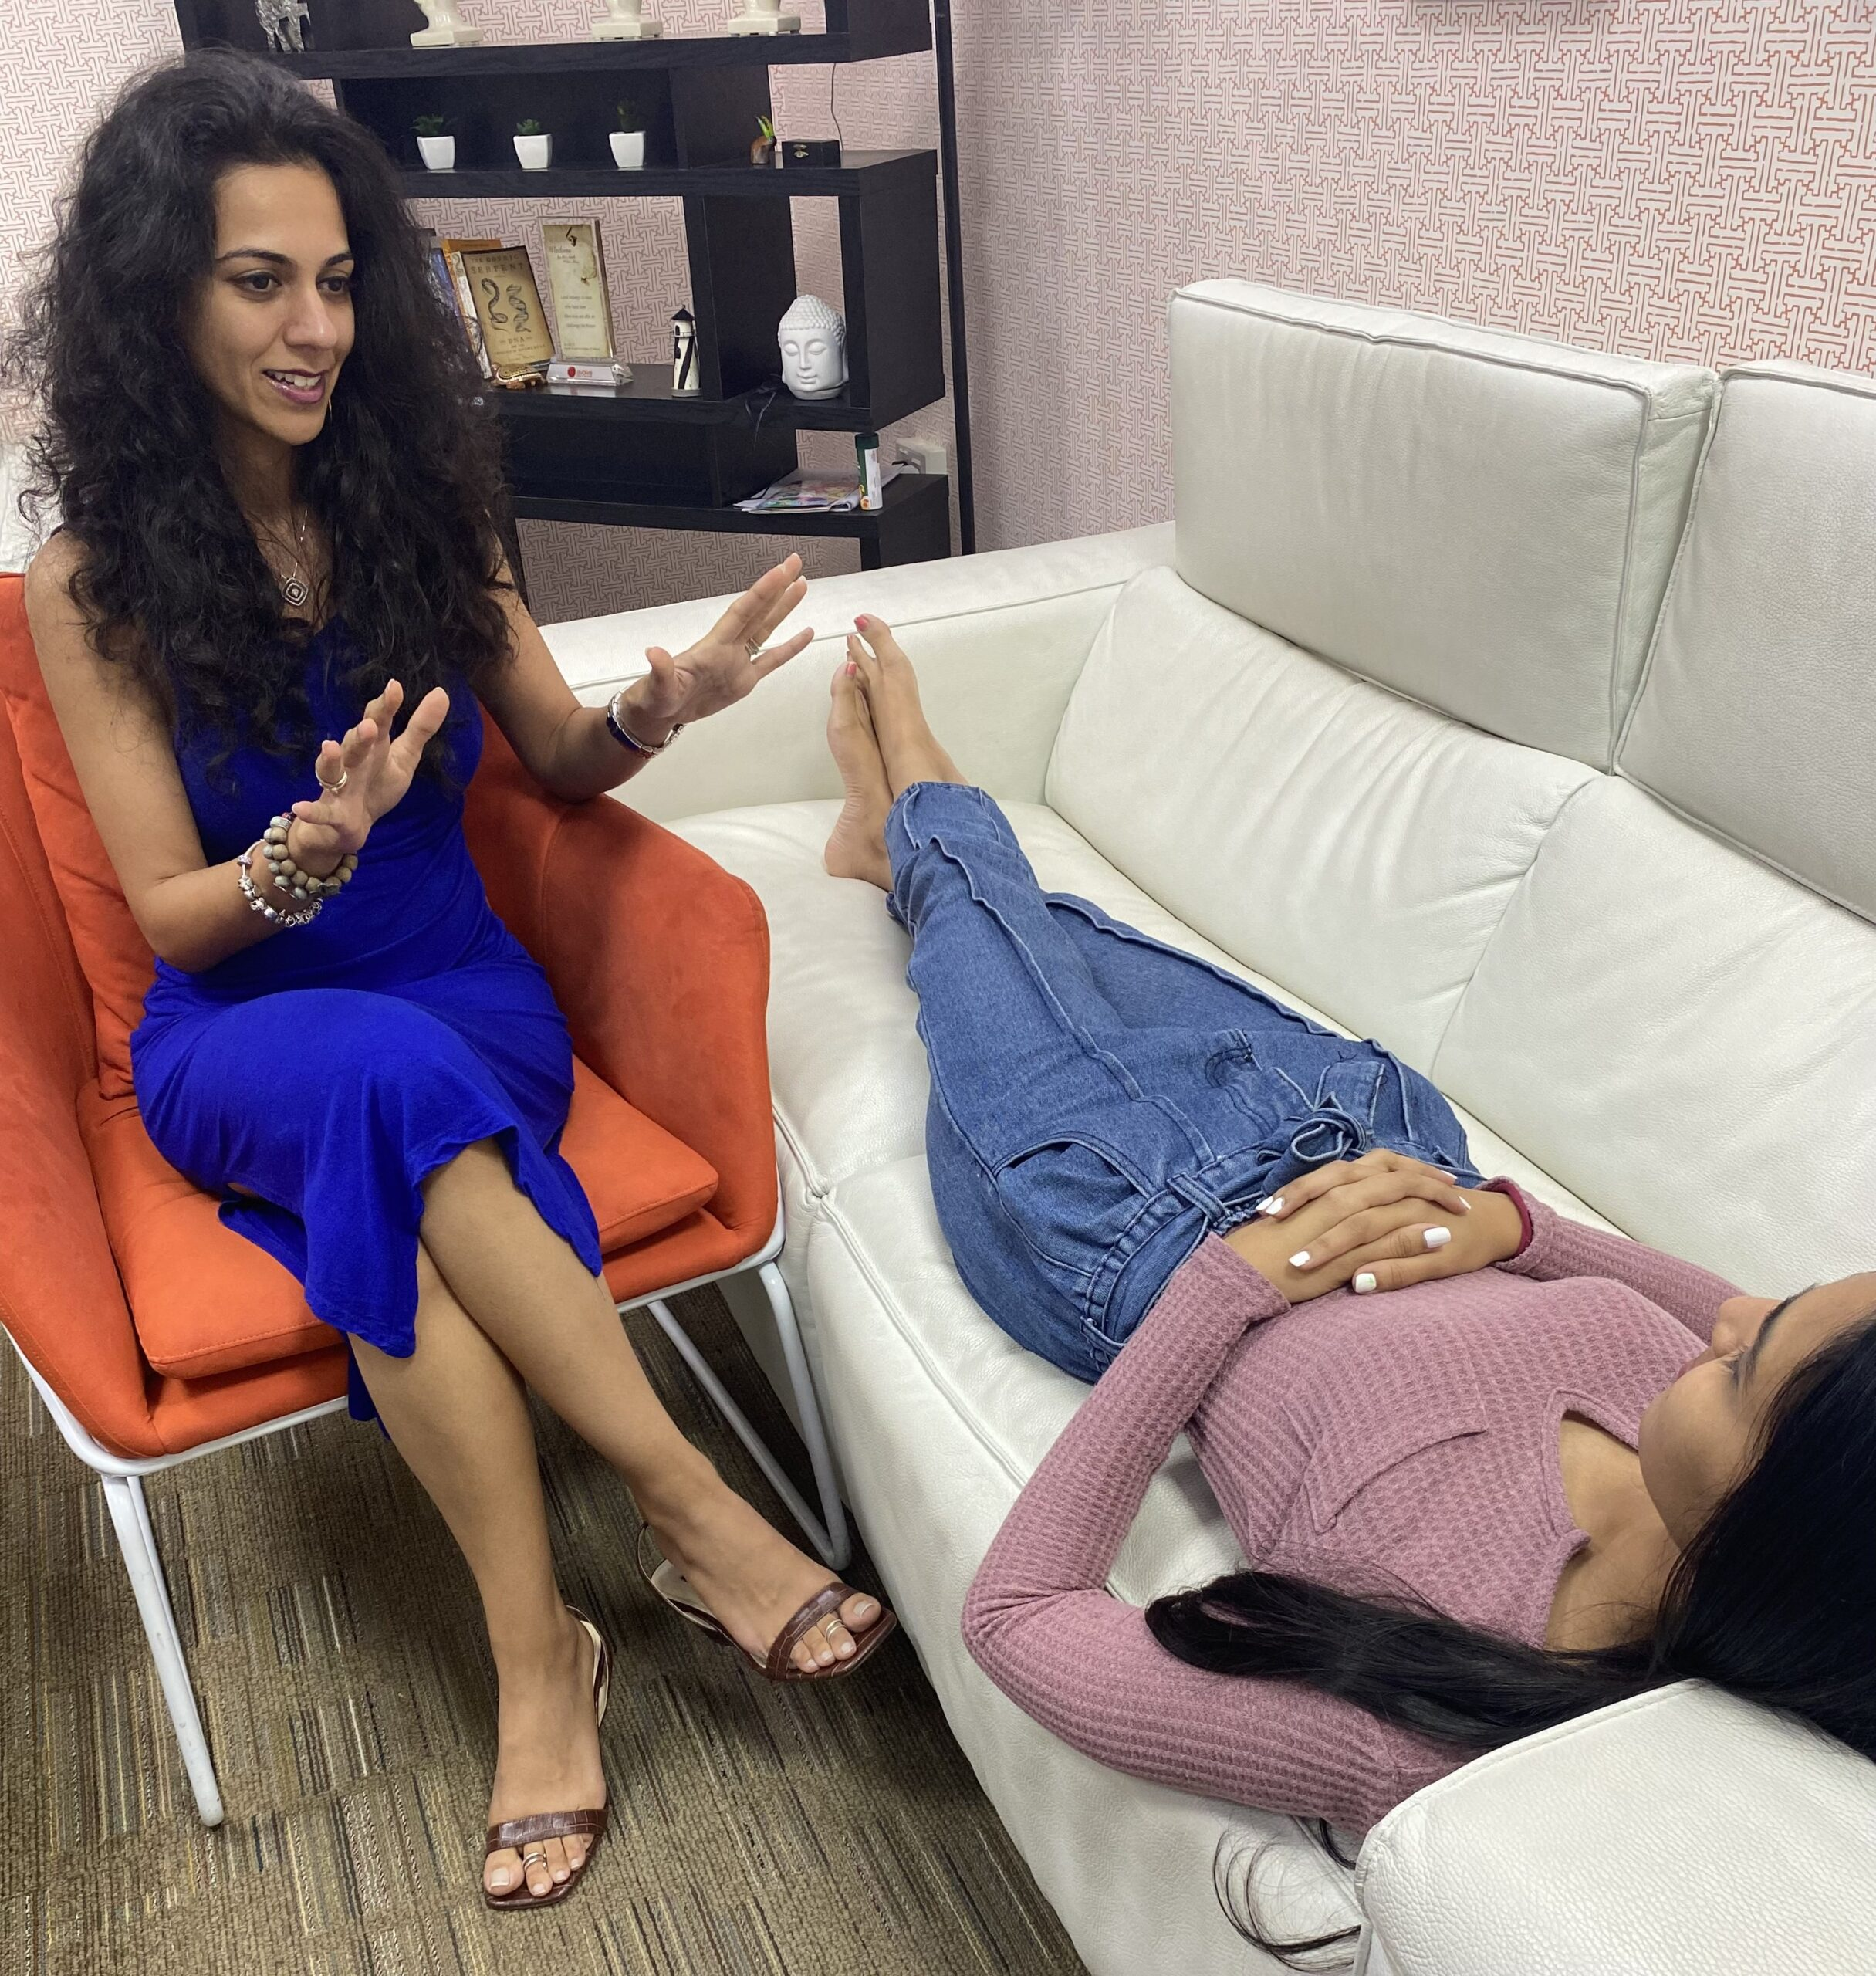 Psychologist Ankita Magdani during hypnotherapy session with client lying on couch